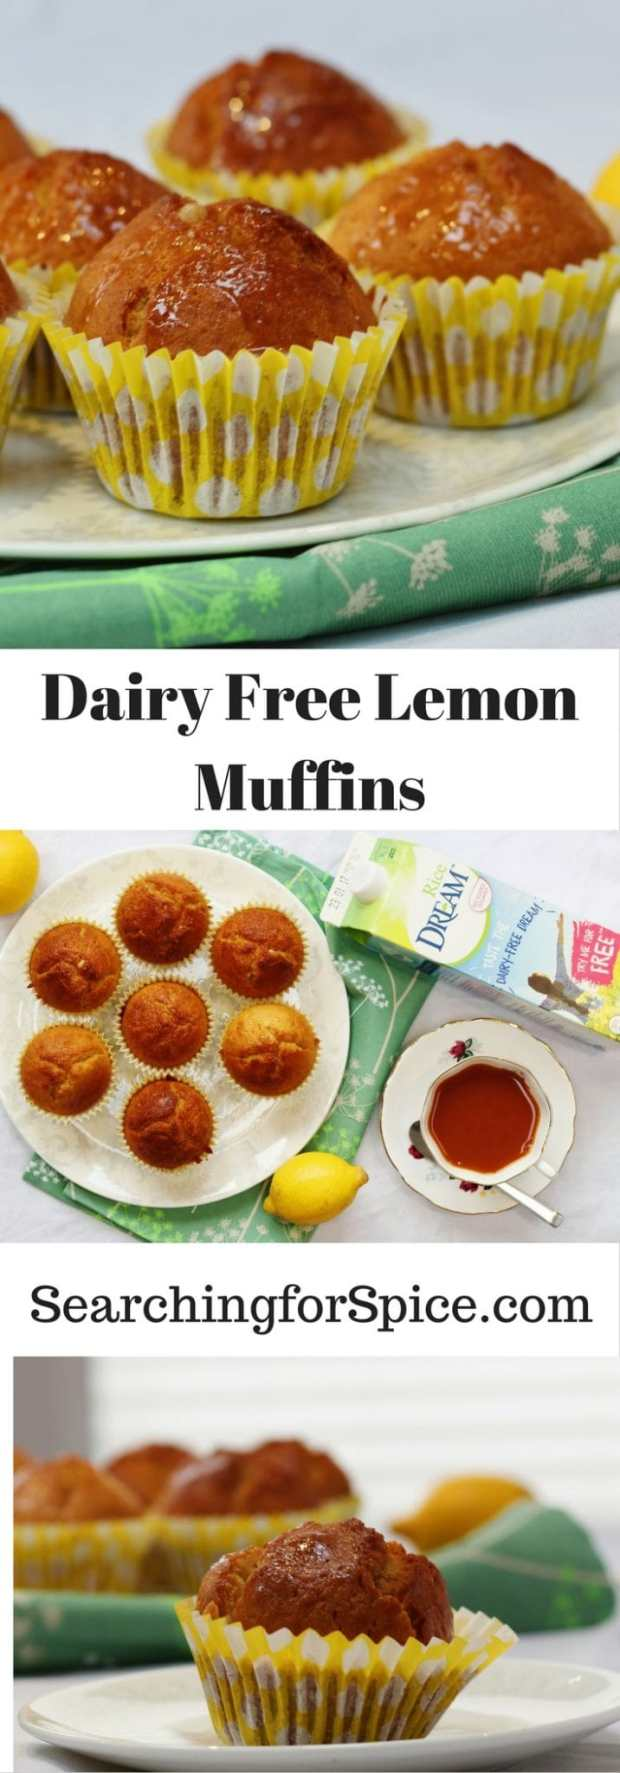 Dairy-Free Lemon Muffins with Rice Dream